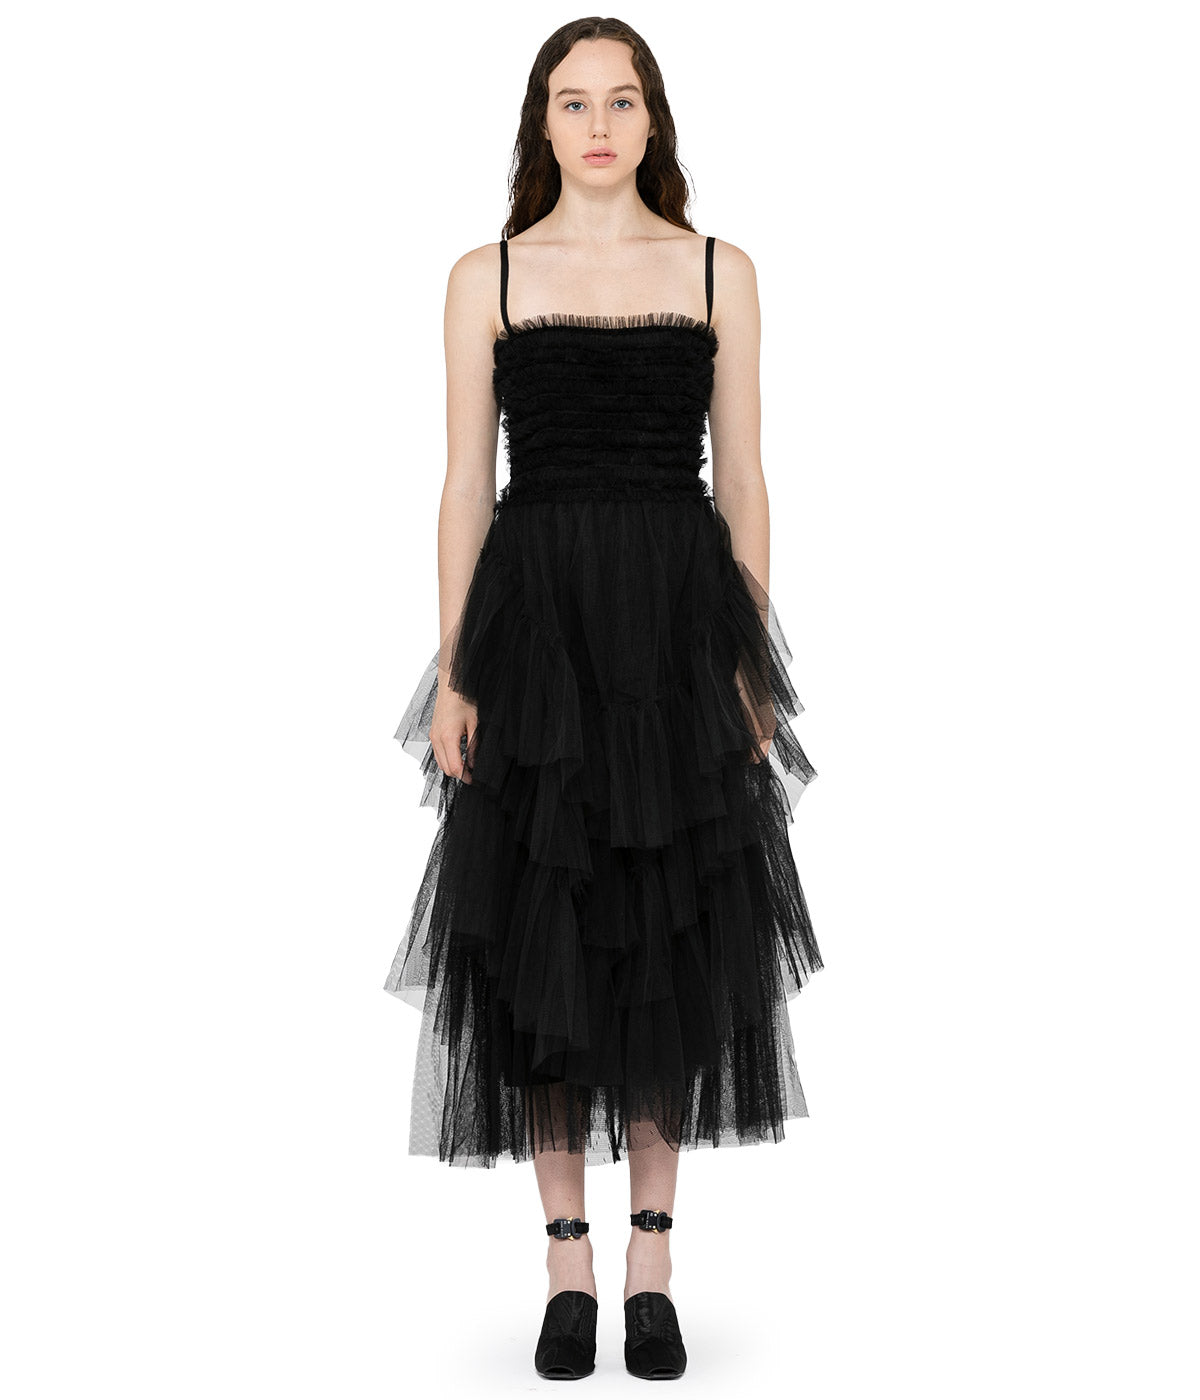 Black Layered Tulle Dress